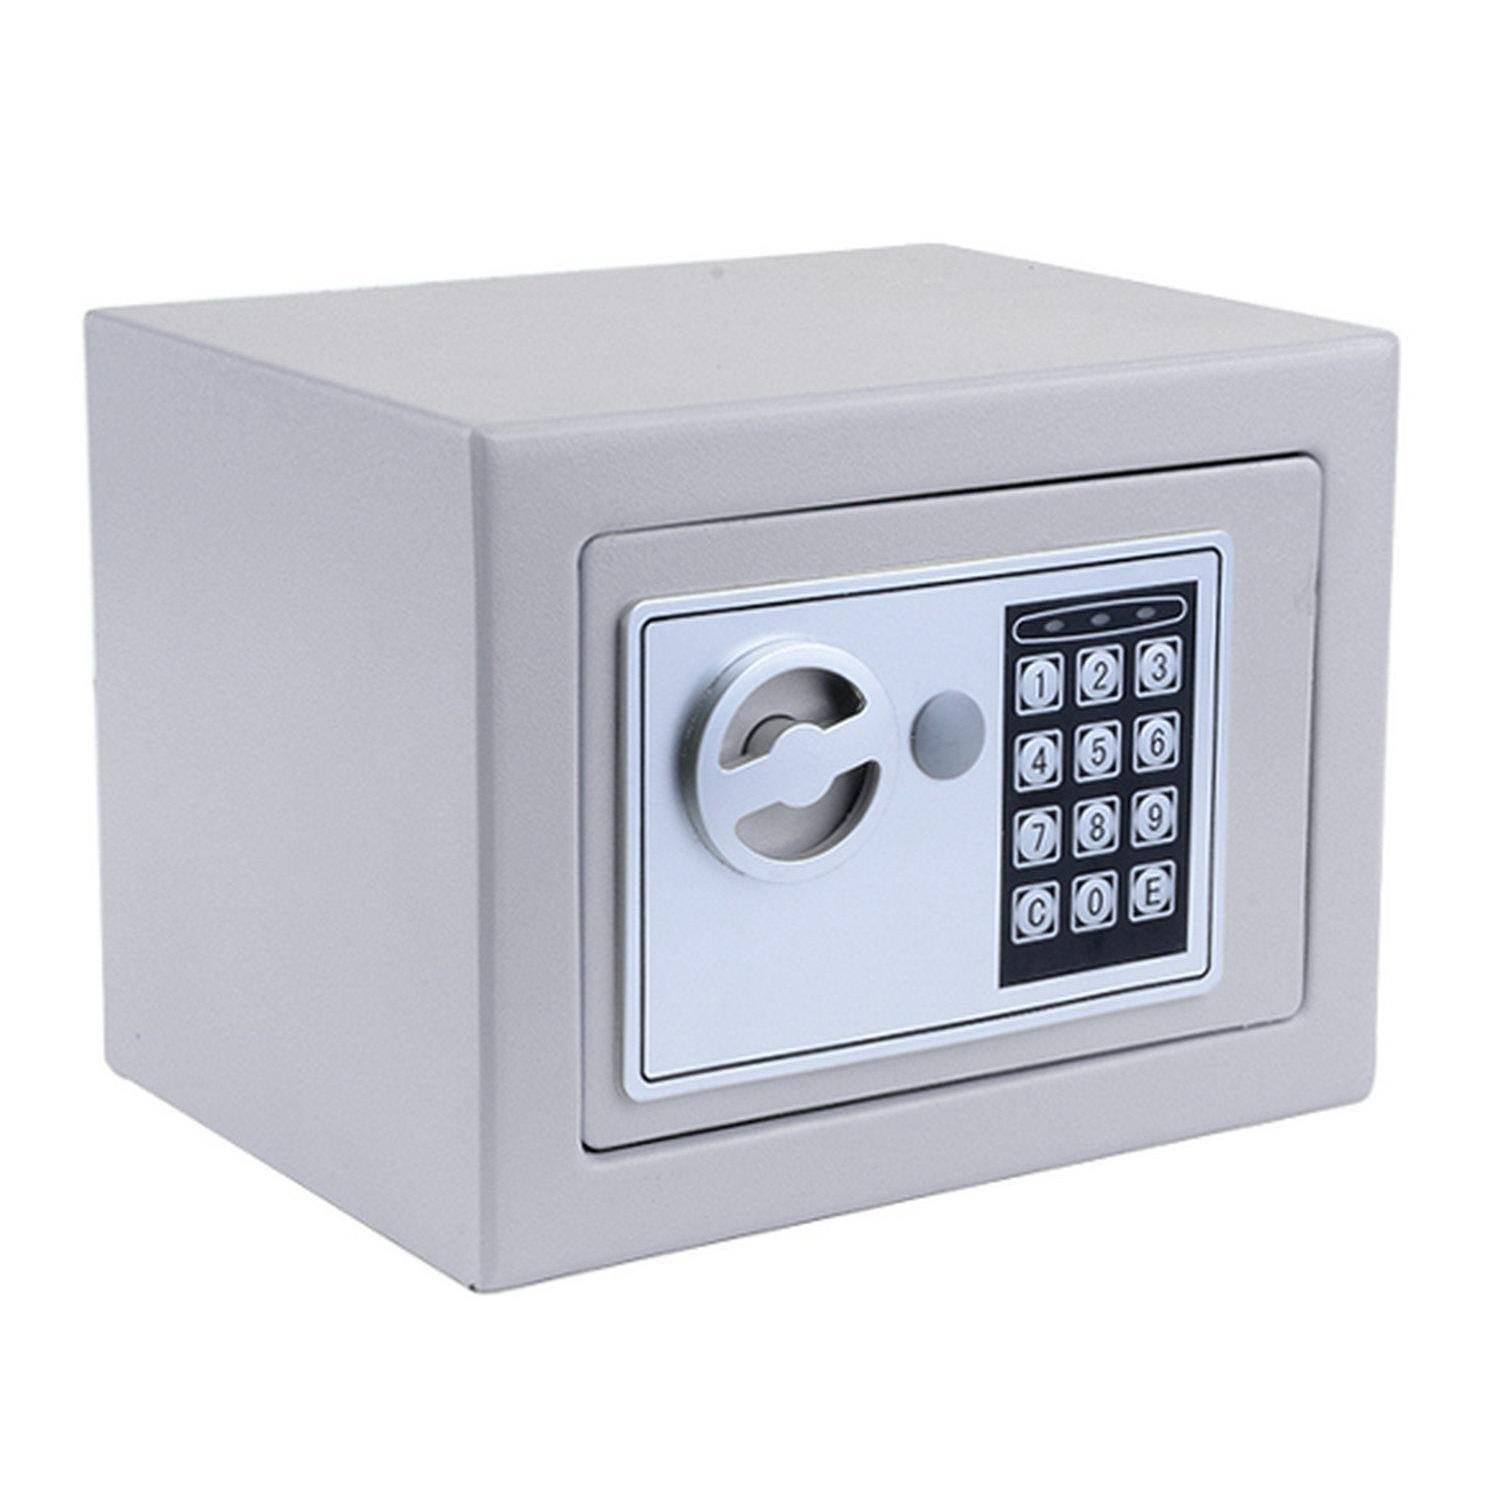 Kaluo Small Home Safe Security Safe Box Electric Digital Lock Wall Cabinet Safe for Jewelry Cash, 8.9'' X 6.5'' X 6.5'', with 2 Keys (Silver Grey)